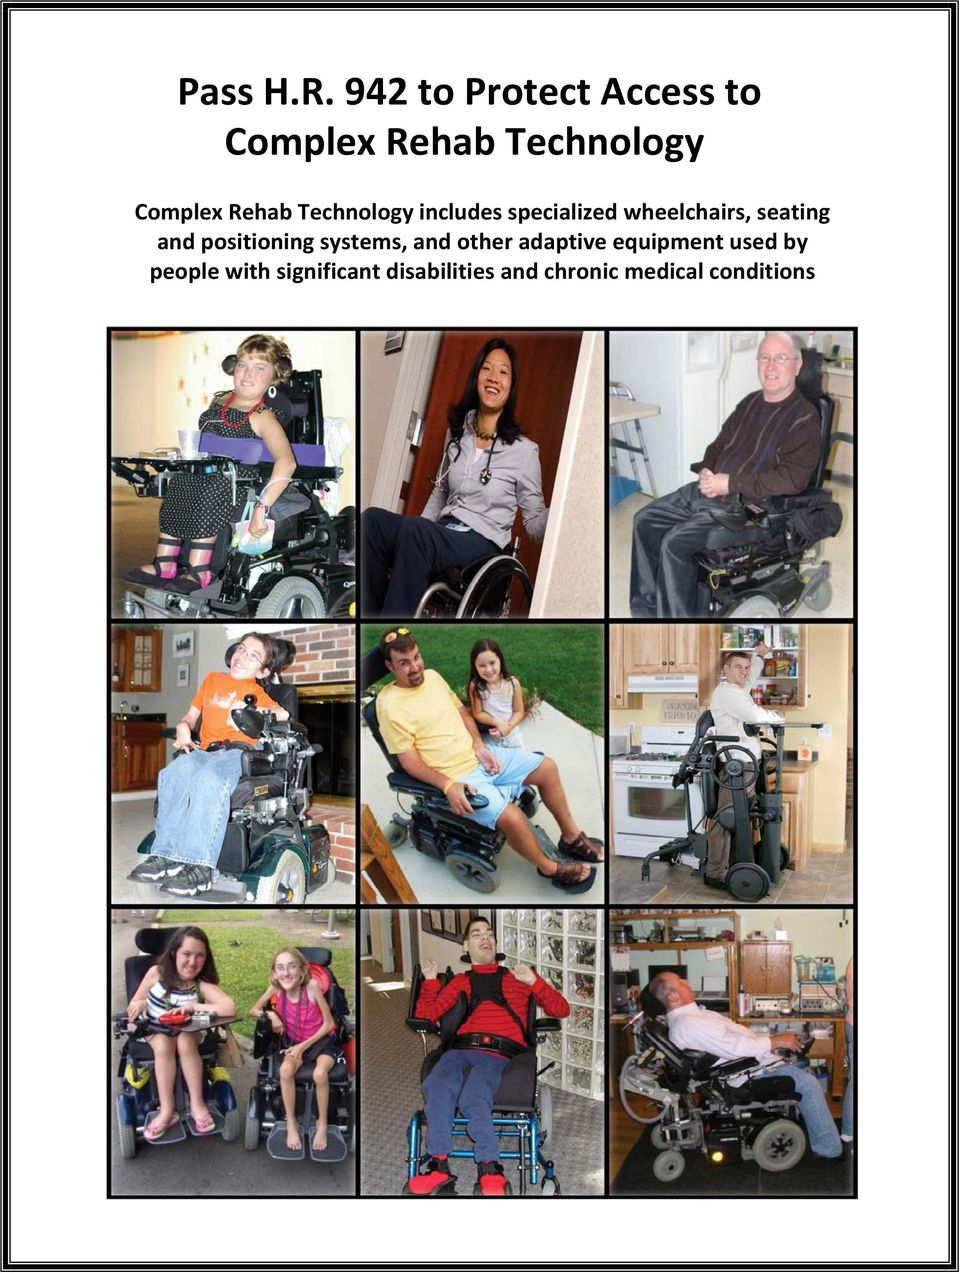 Technology includes specialized wheelchairs, seating and